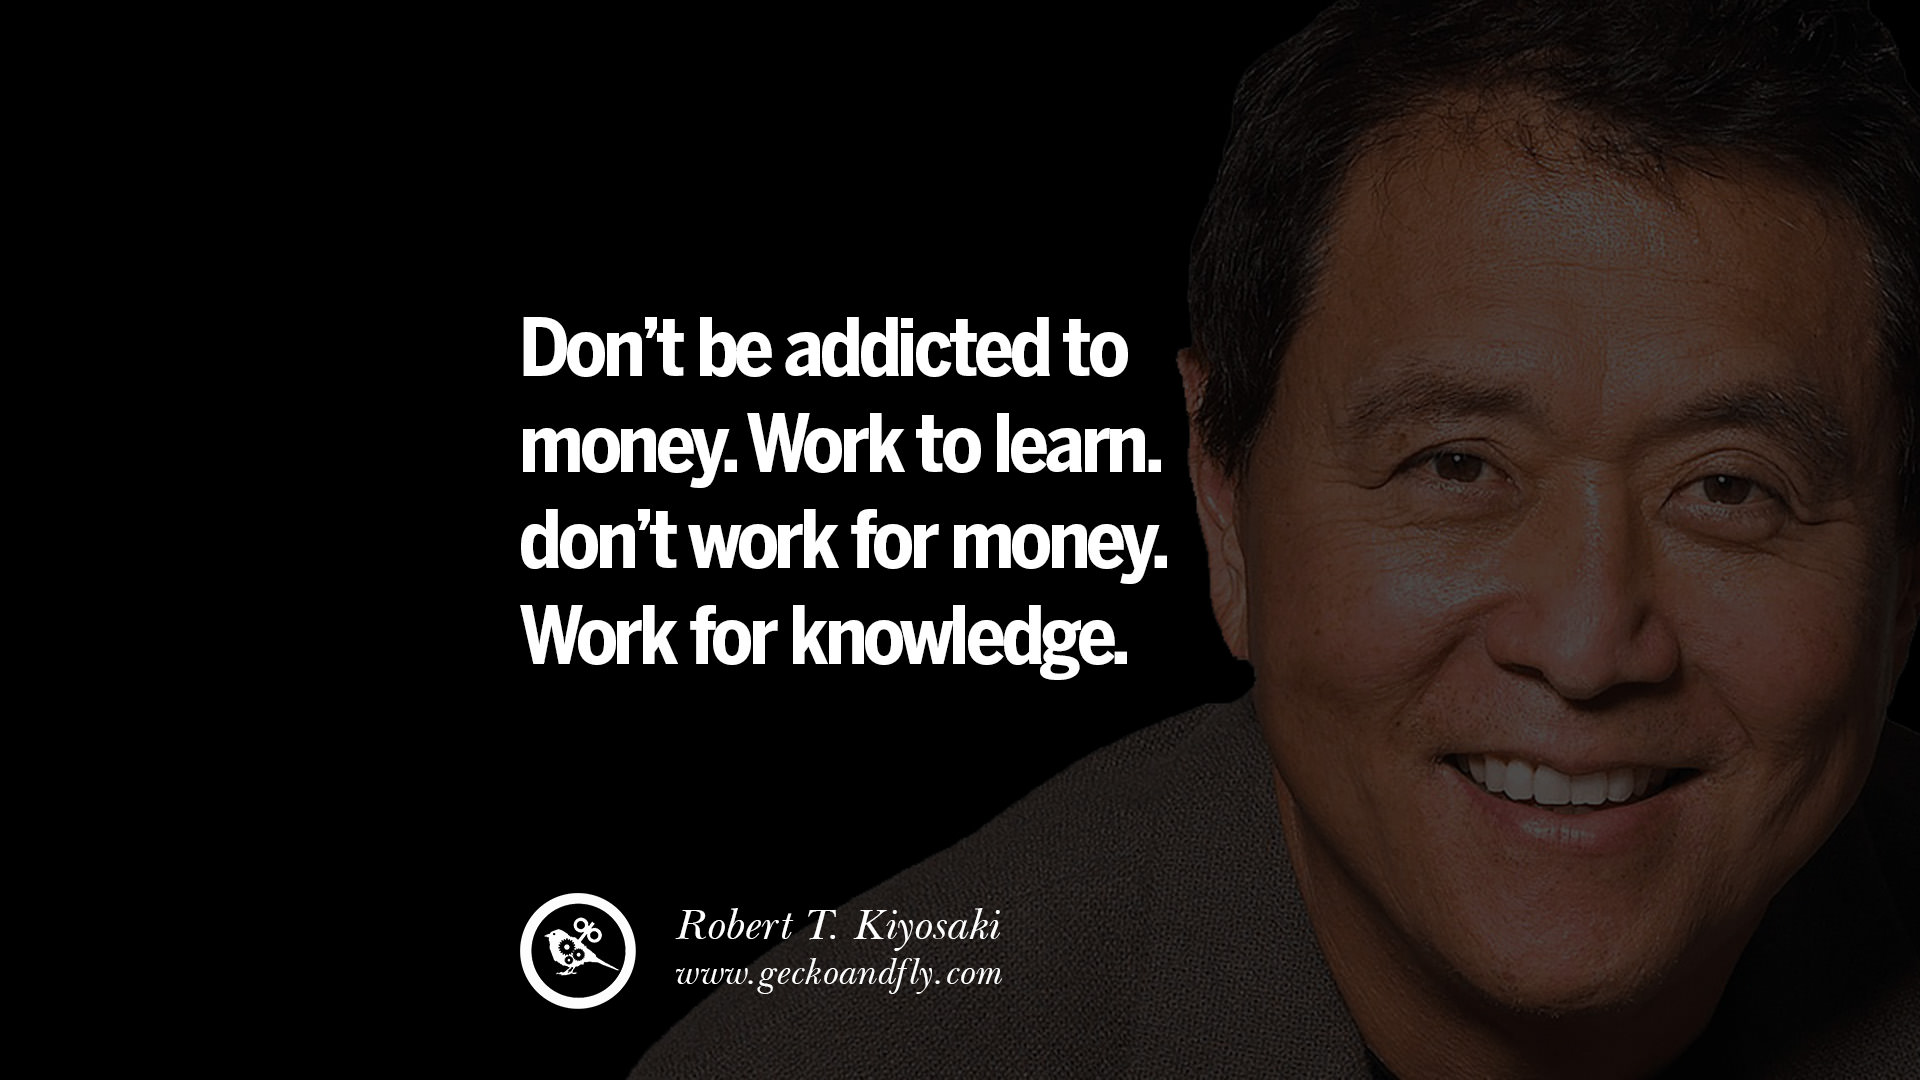 Money Motivation Quotes 60 Motivational Robert Tkiyosaki Quotes For Selling Amway